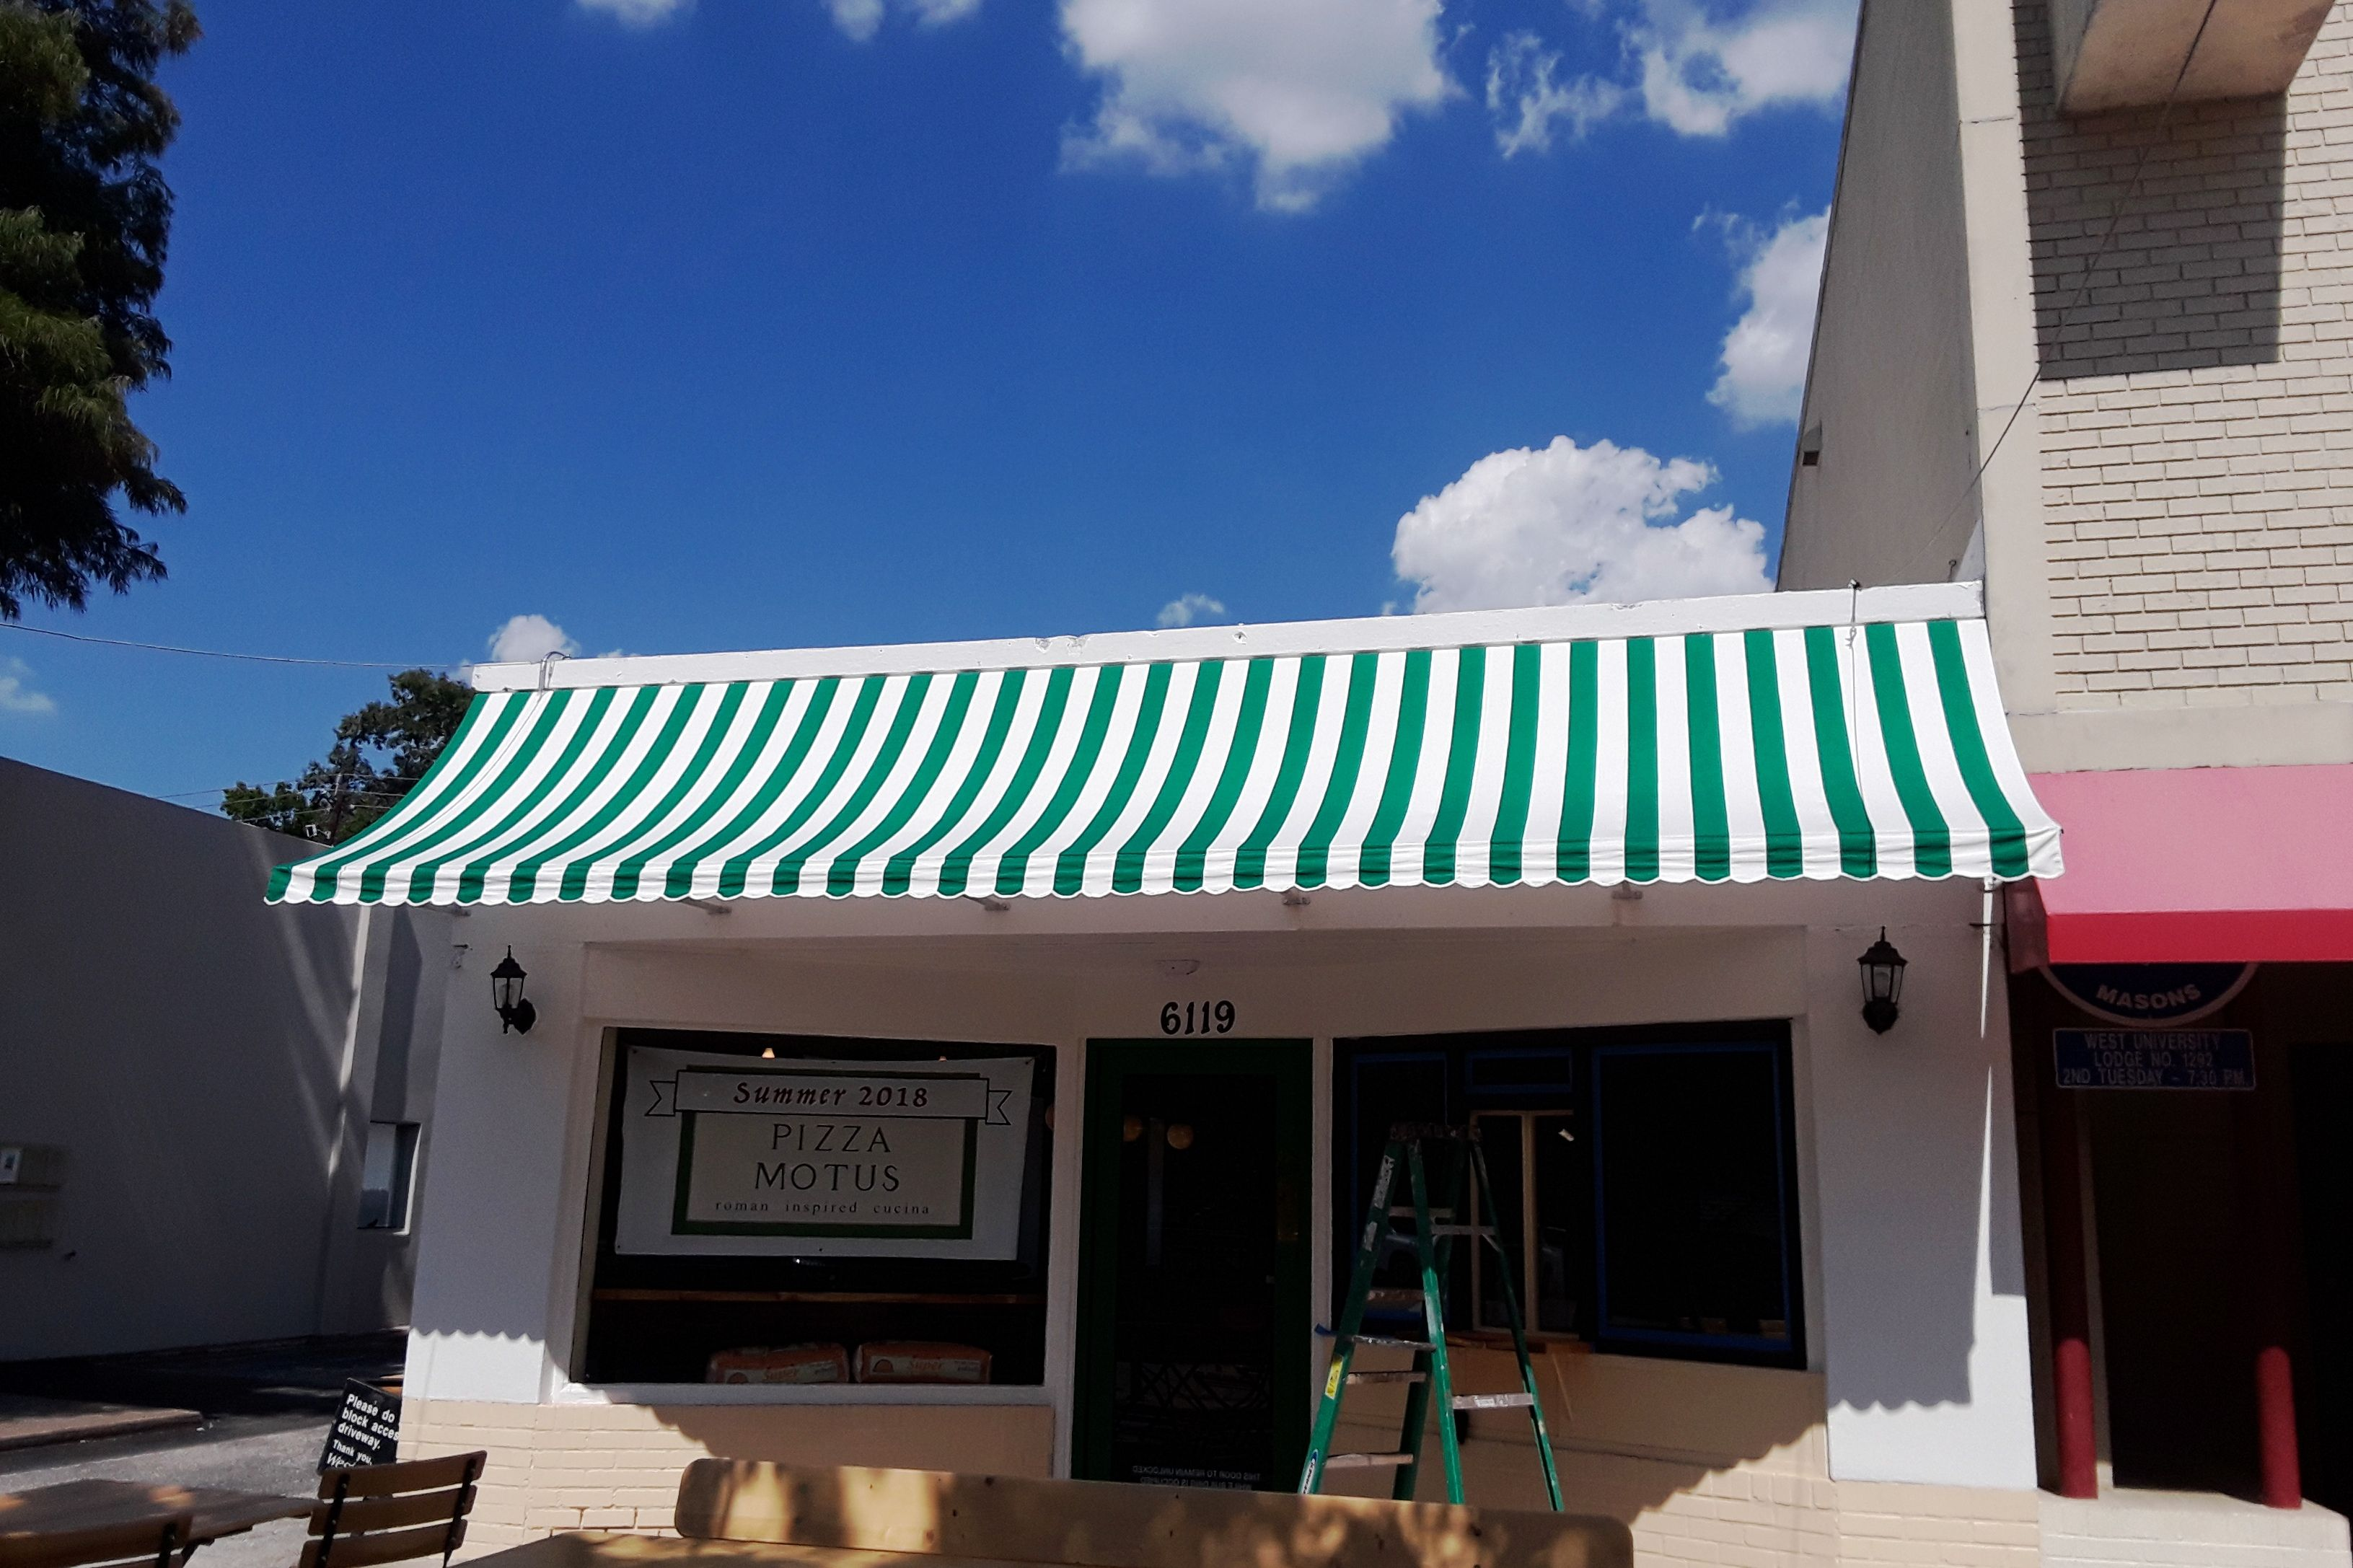 New Pizza Motus Awning We Did If Green And White Doesn T Make You Think Pizza I Don T Know What Does Awning New Pizza Outdoor Decor